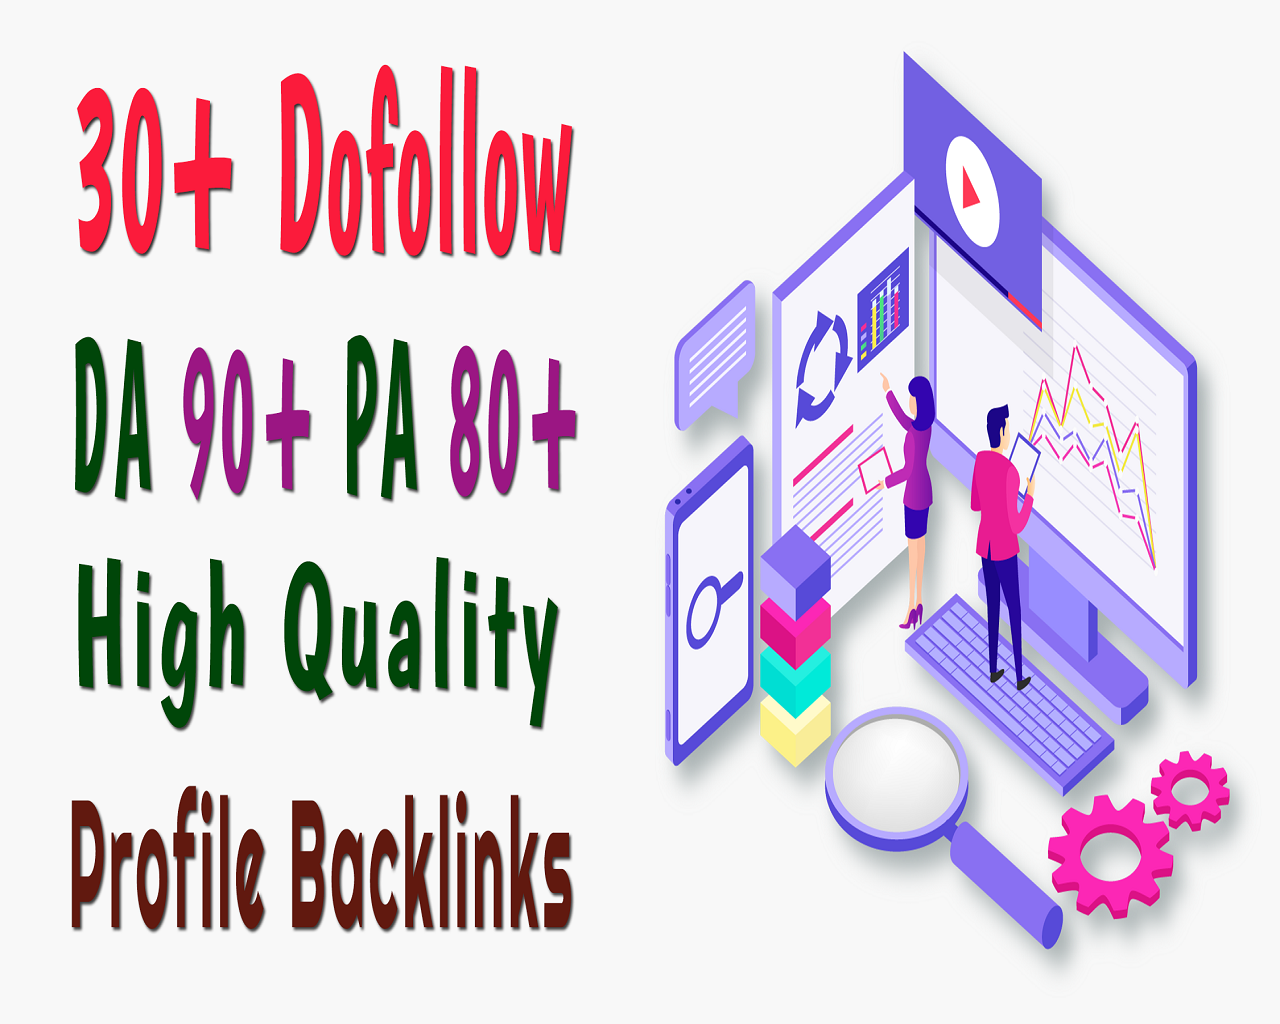 Manually Do 30 Dofollow High Quality Seo Pr9 Profiles Backlinks